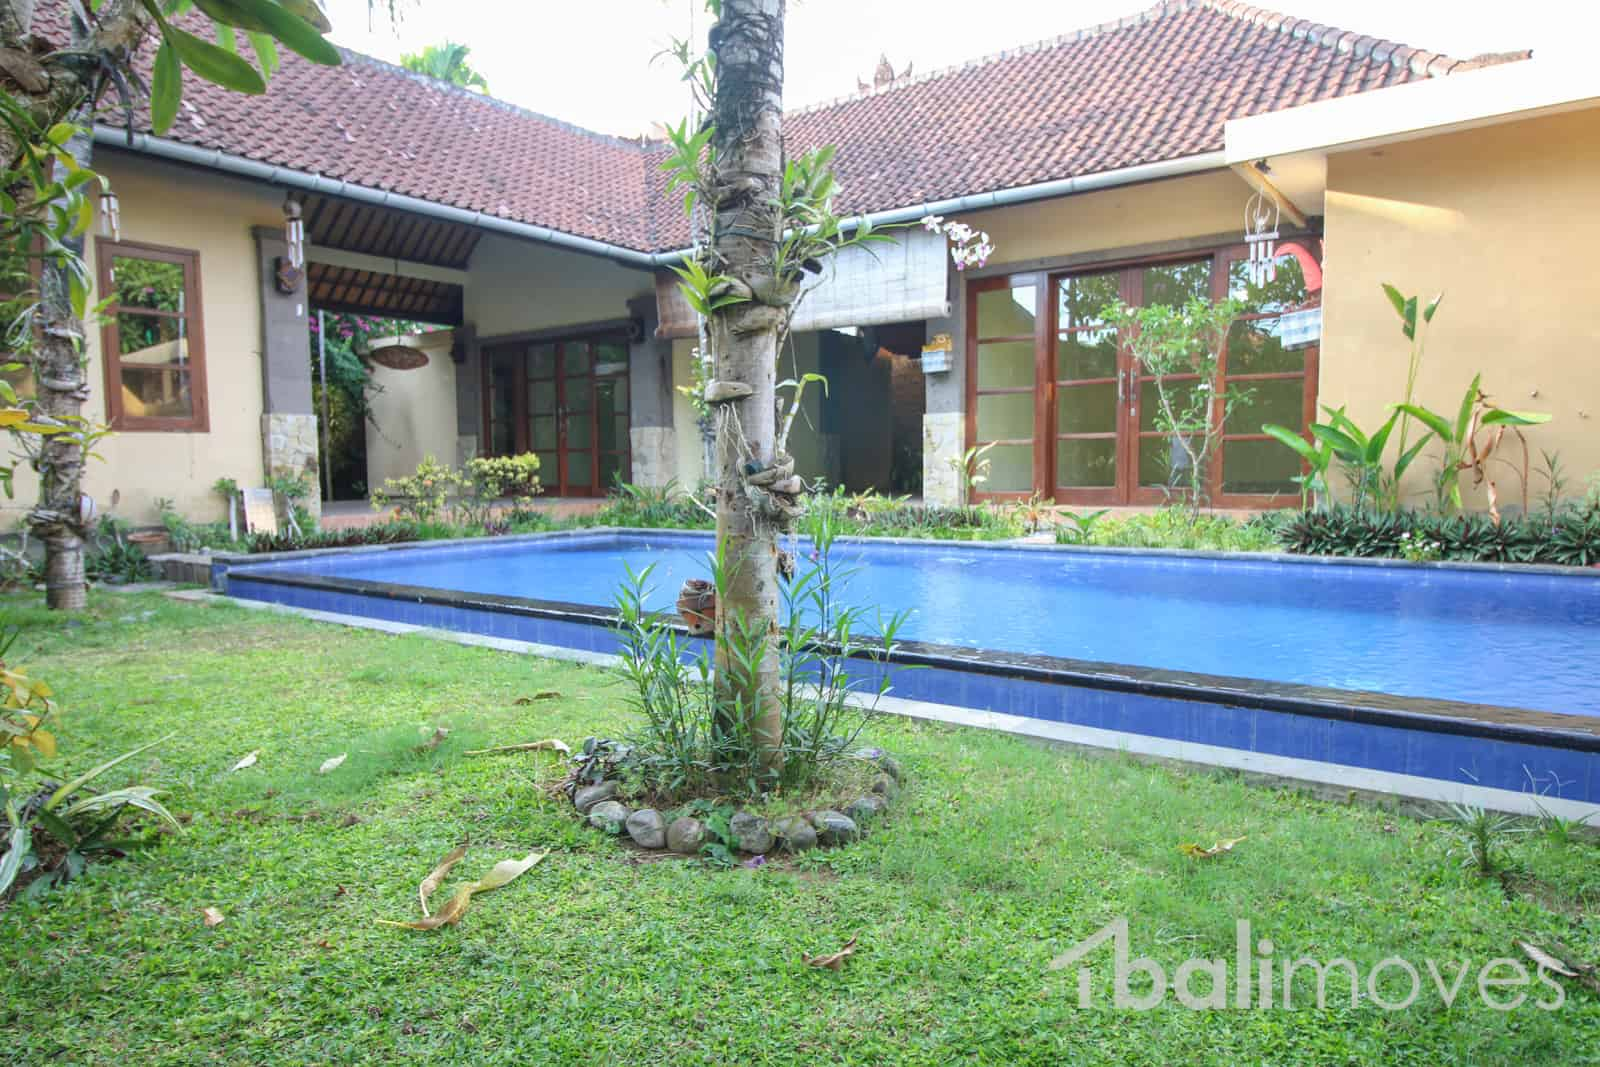 Two Bedroom Unfurnished Villa On 450m2 Land Sanur 39 S Local Agent Balimoves Property